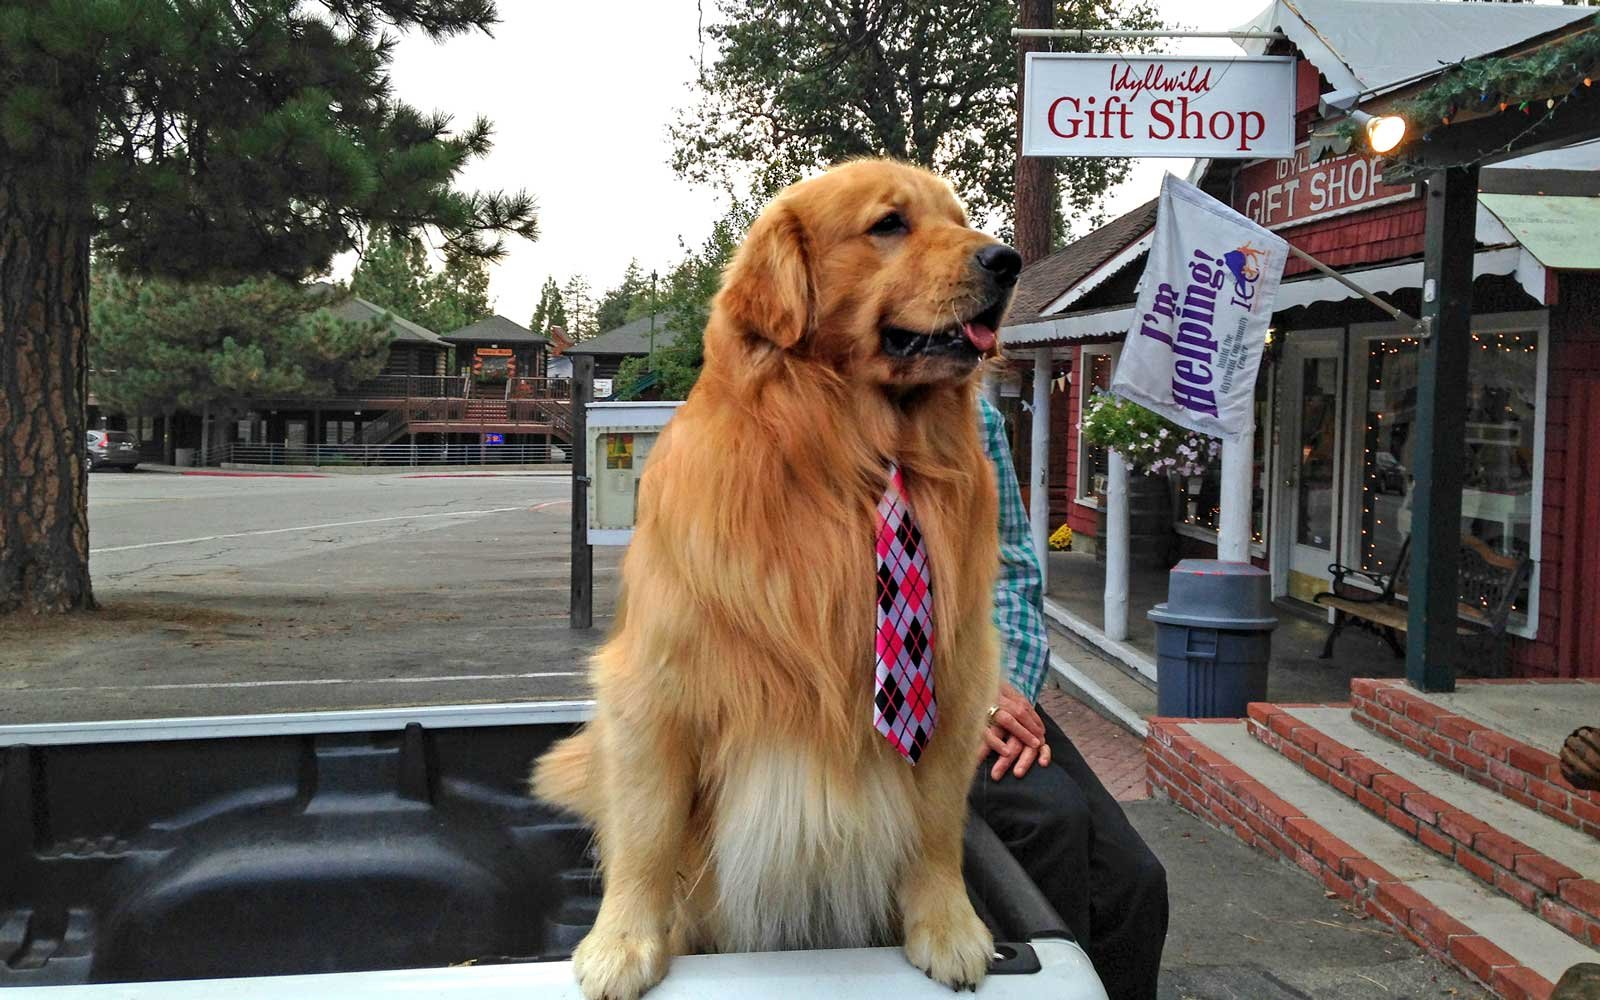 Idyllwild, California's Mayor Max